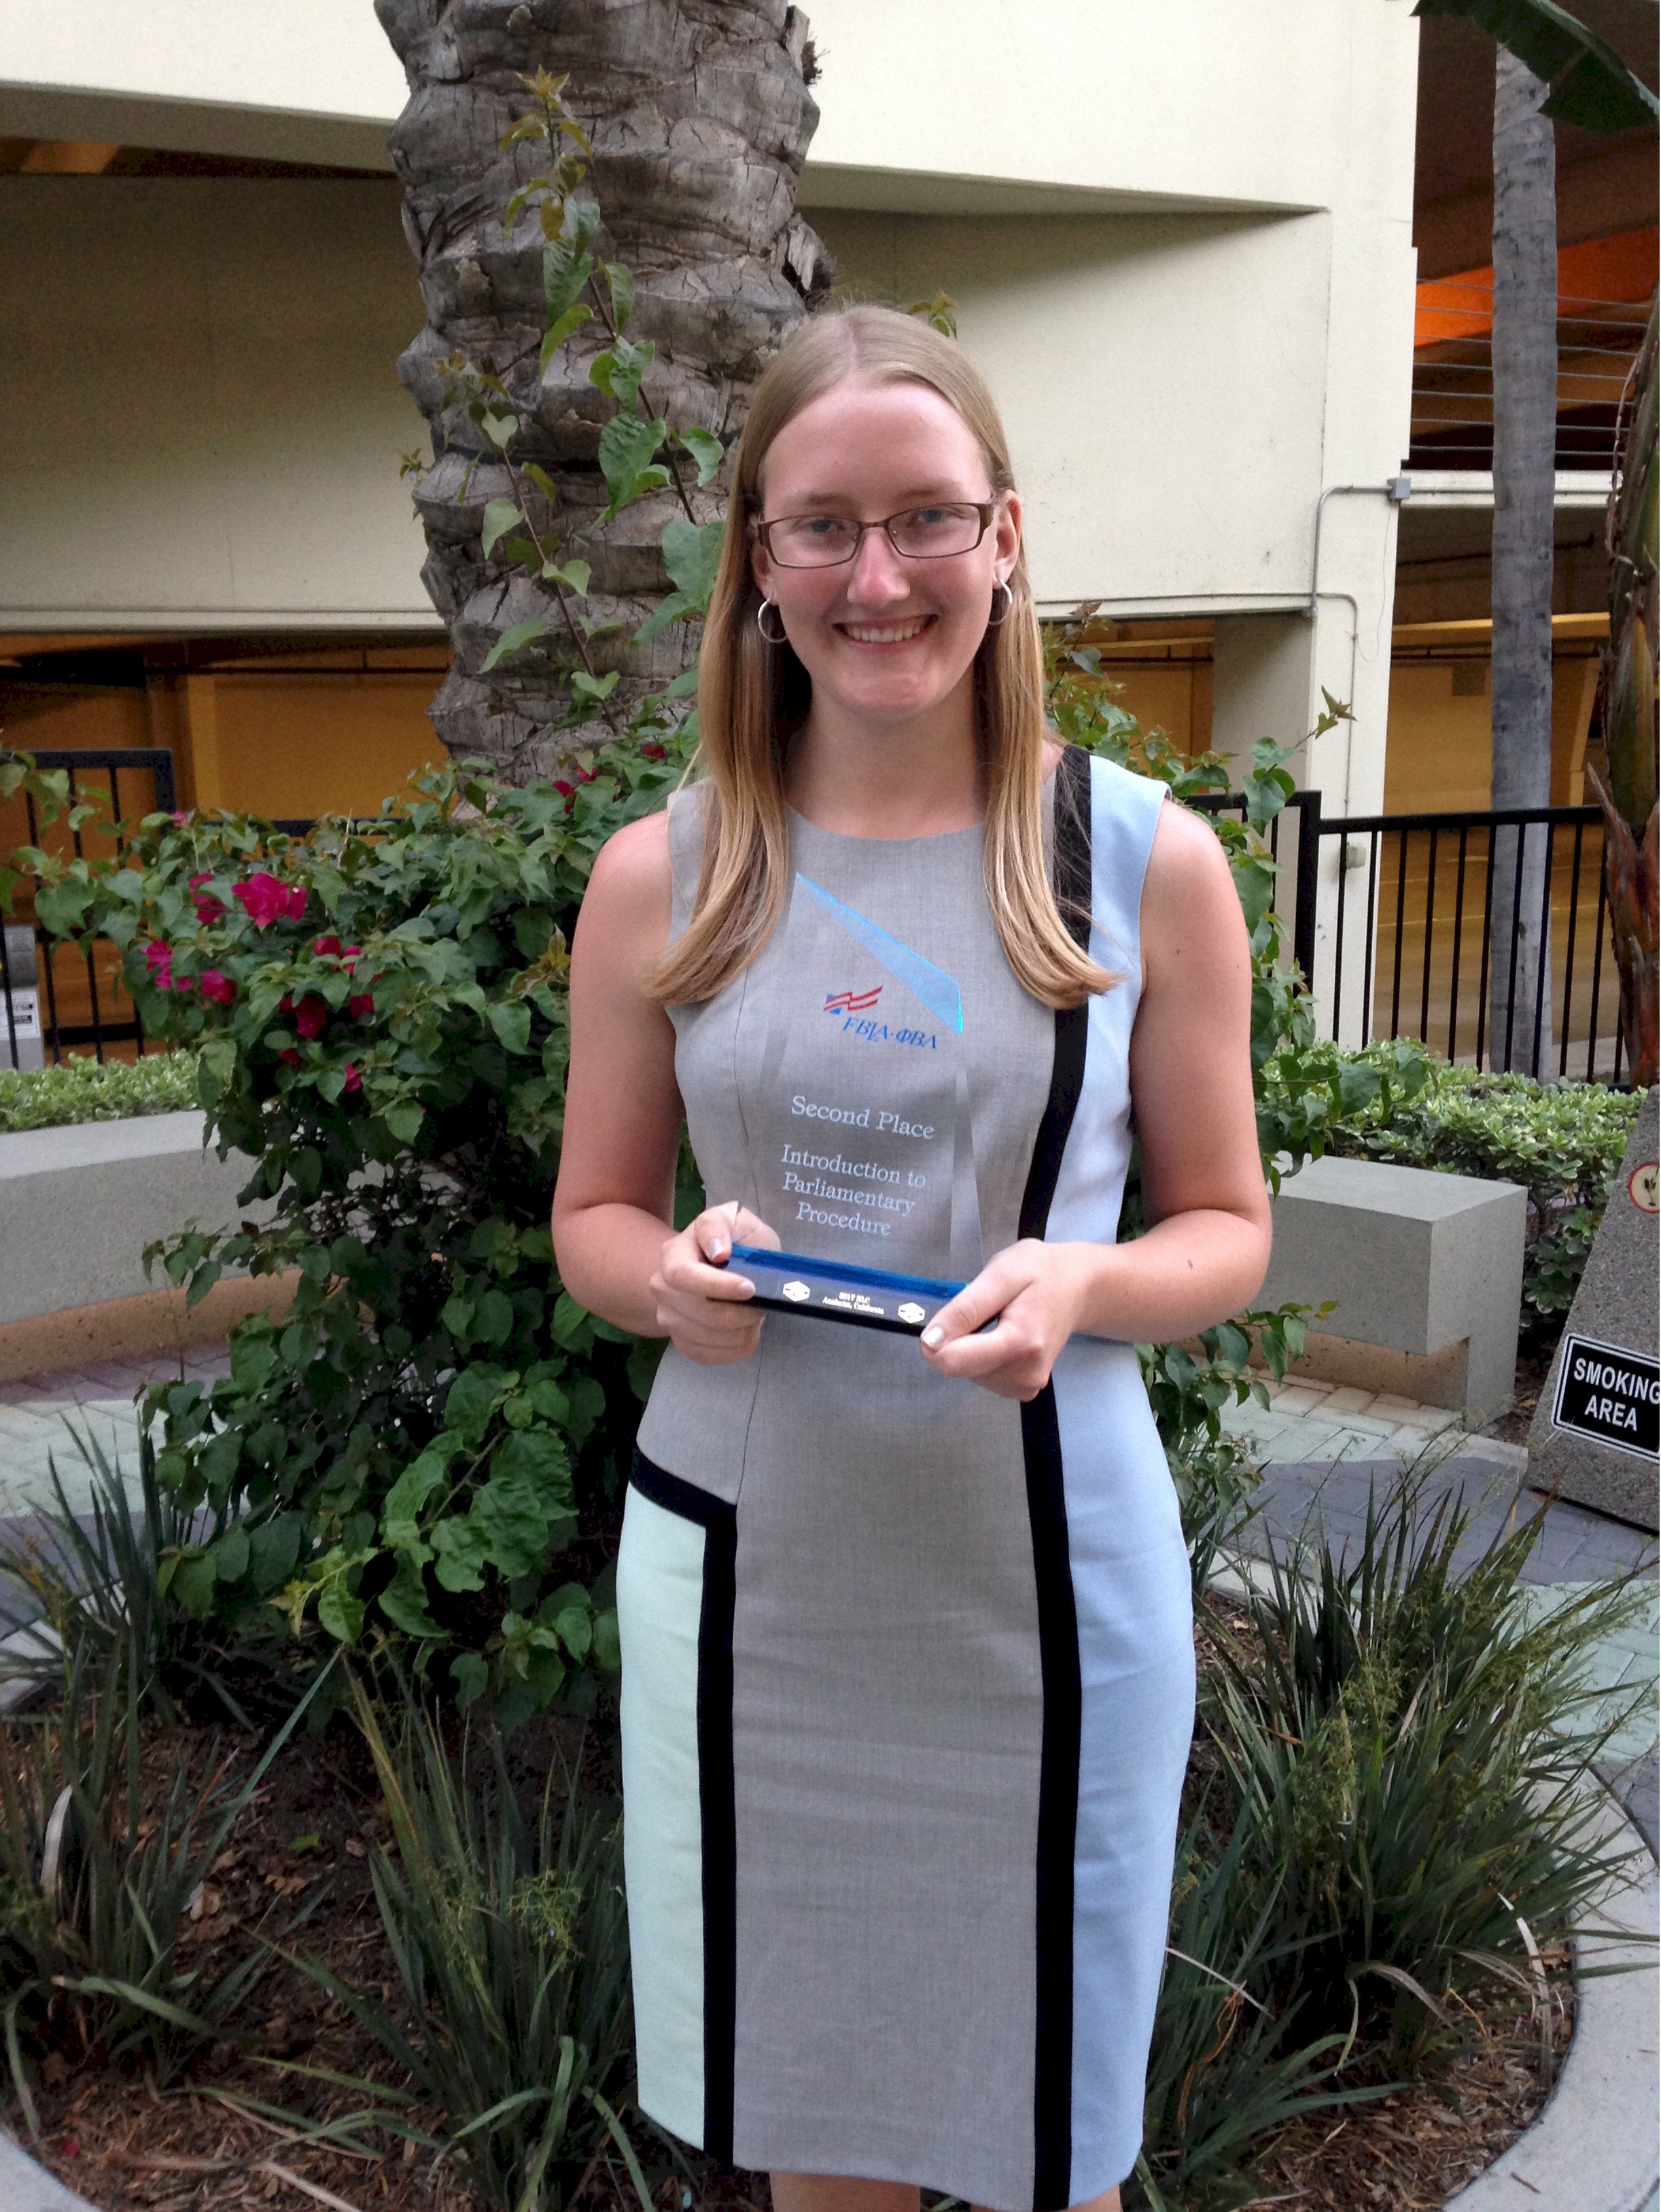 FBLA National Winner - Allison Mattern